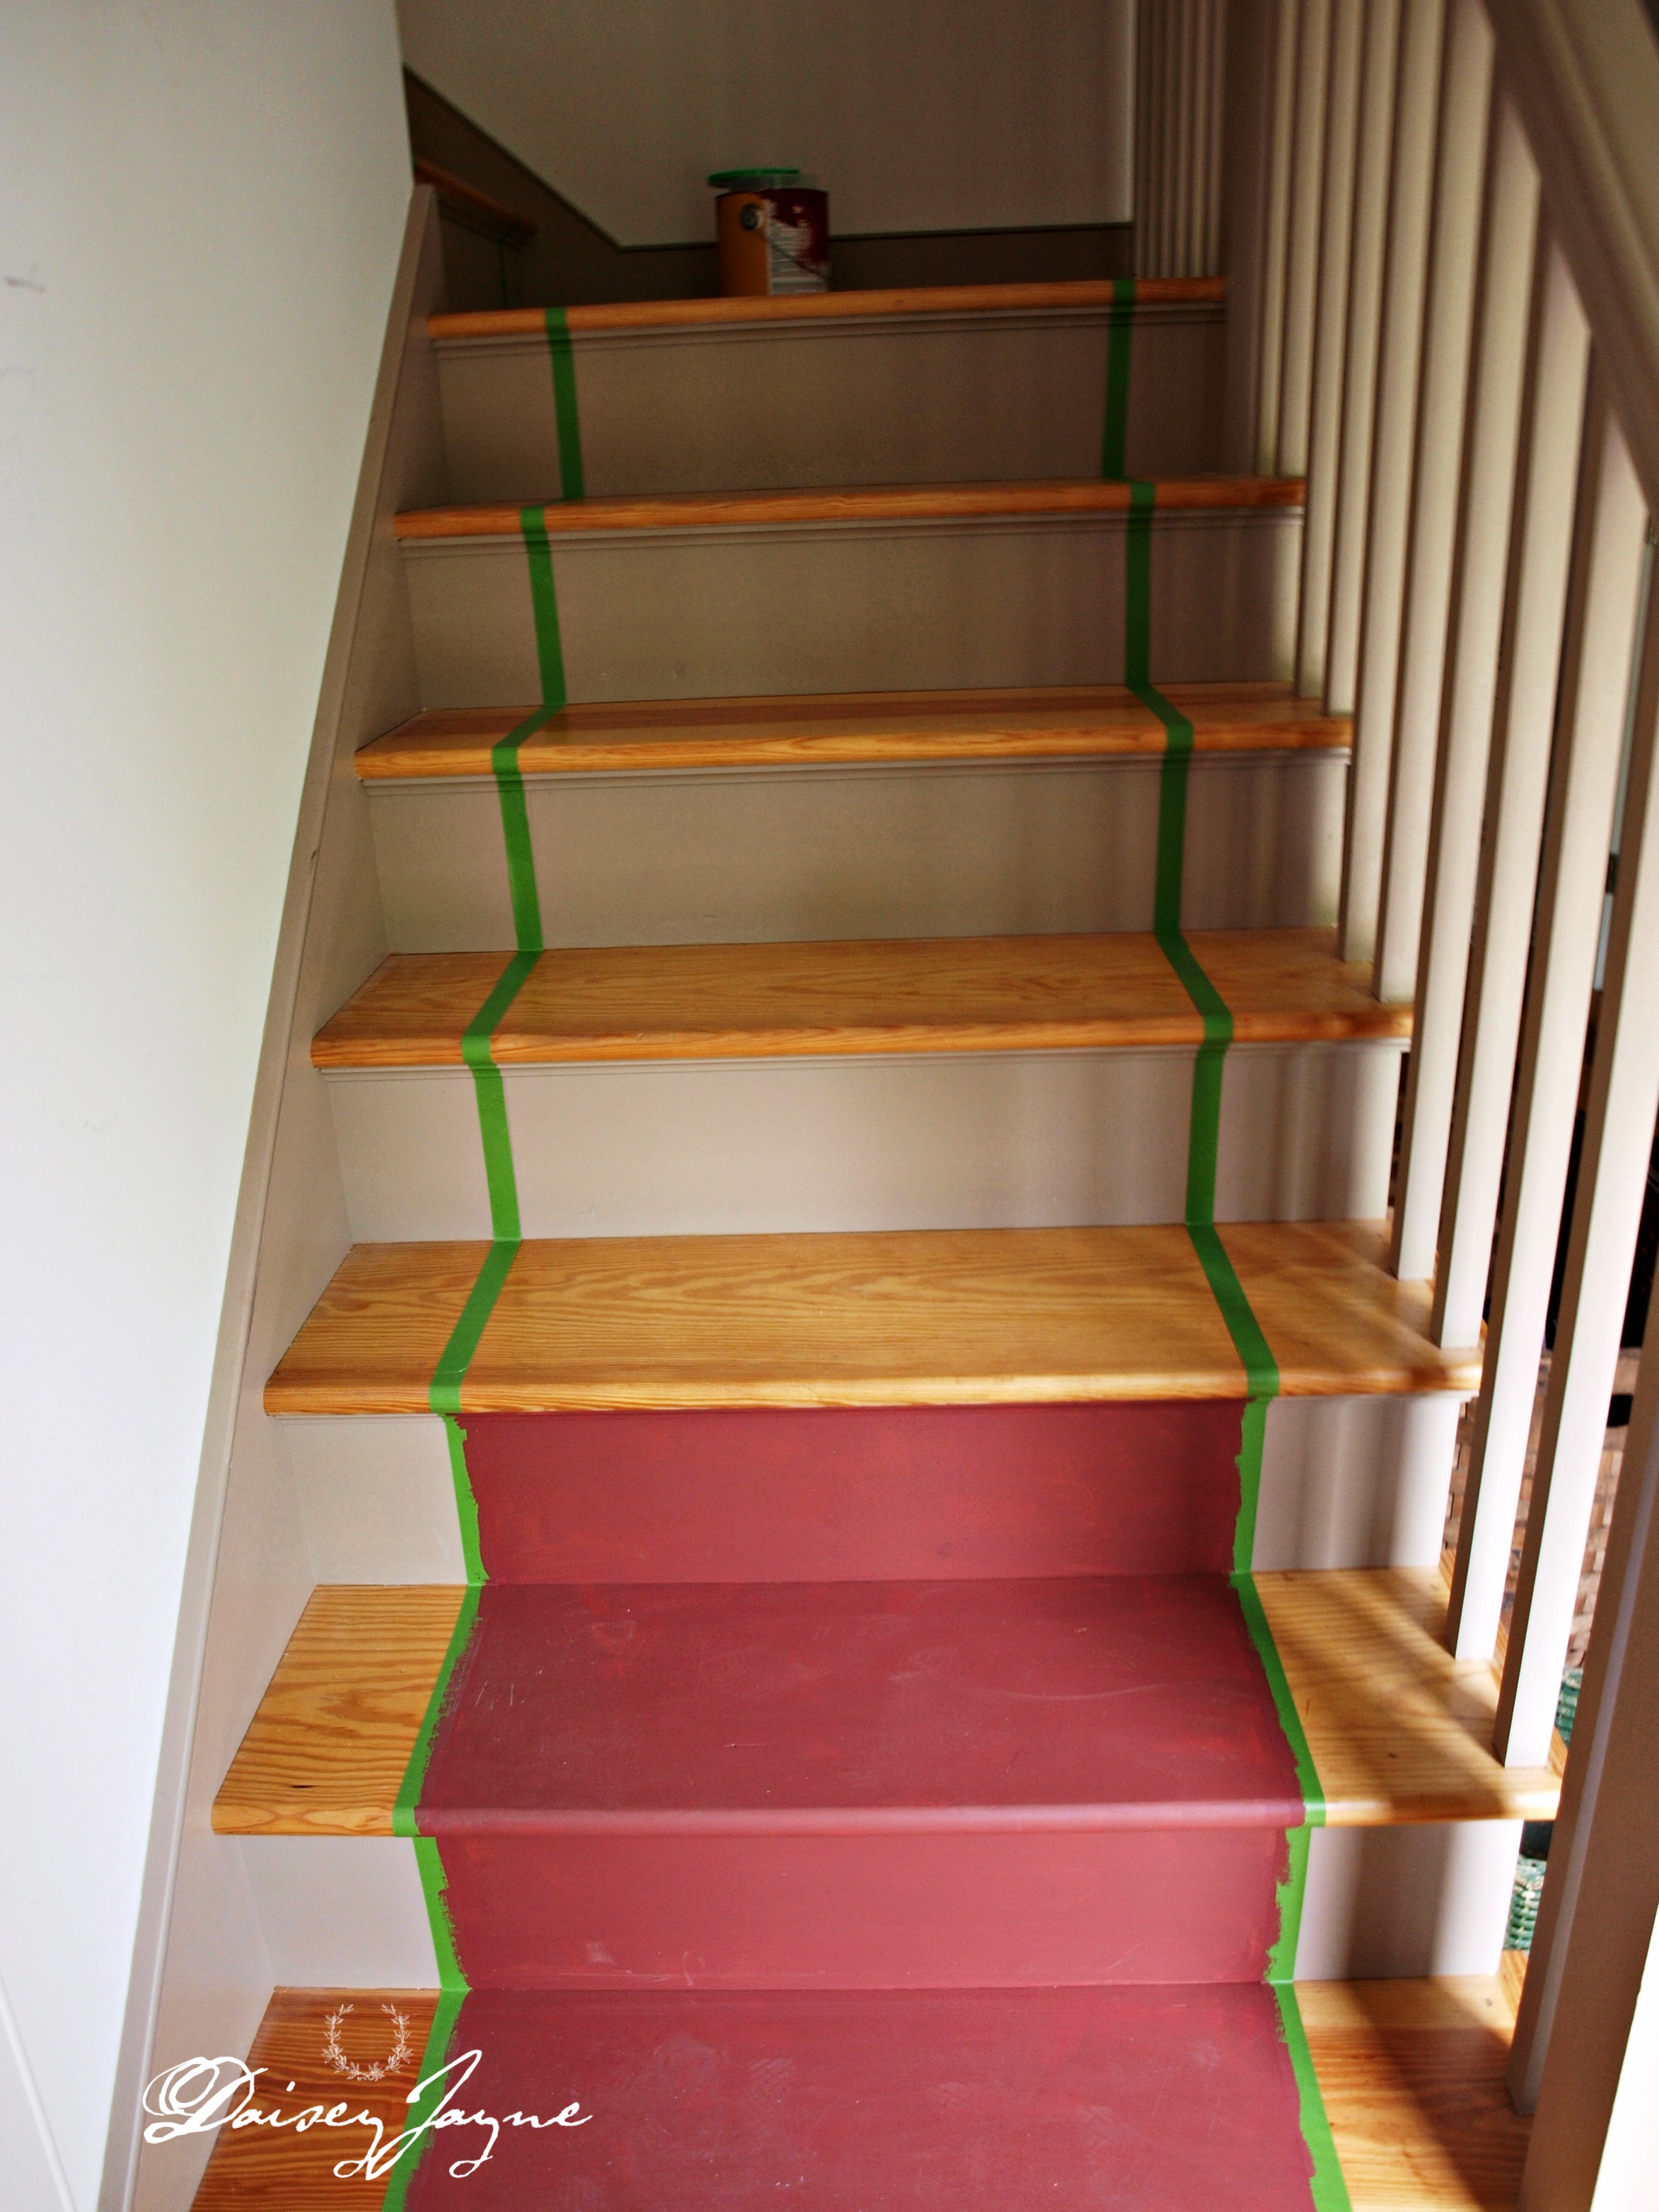 interior stair railing designs ideas and decors most.htm the bonus room stairs  painted daisey jayne  bonus room stairs  painted daisey jayne